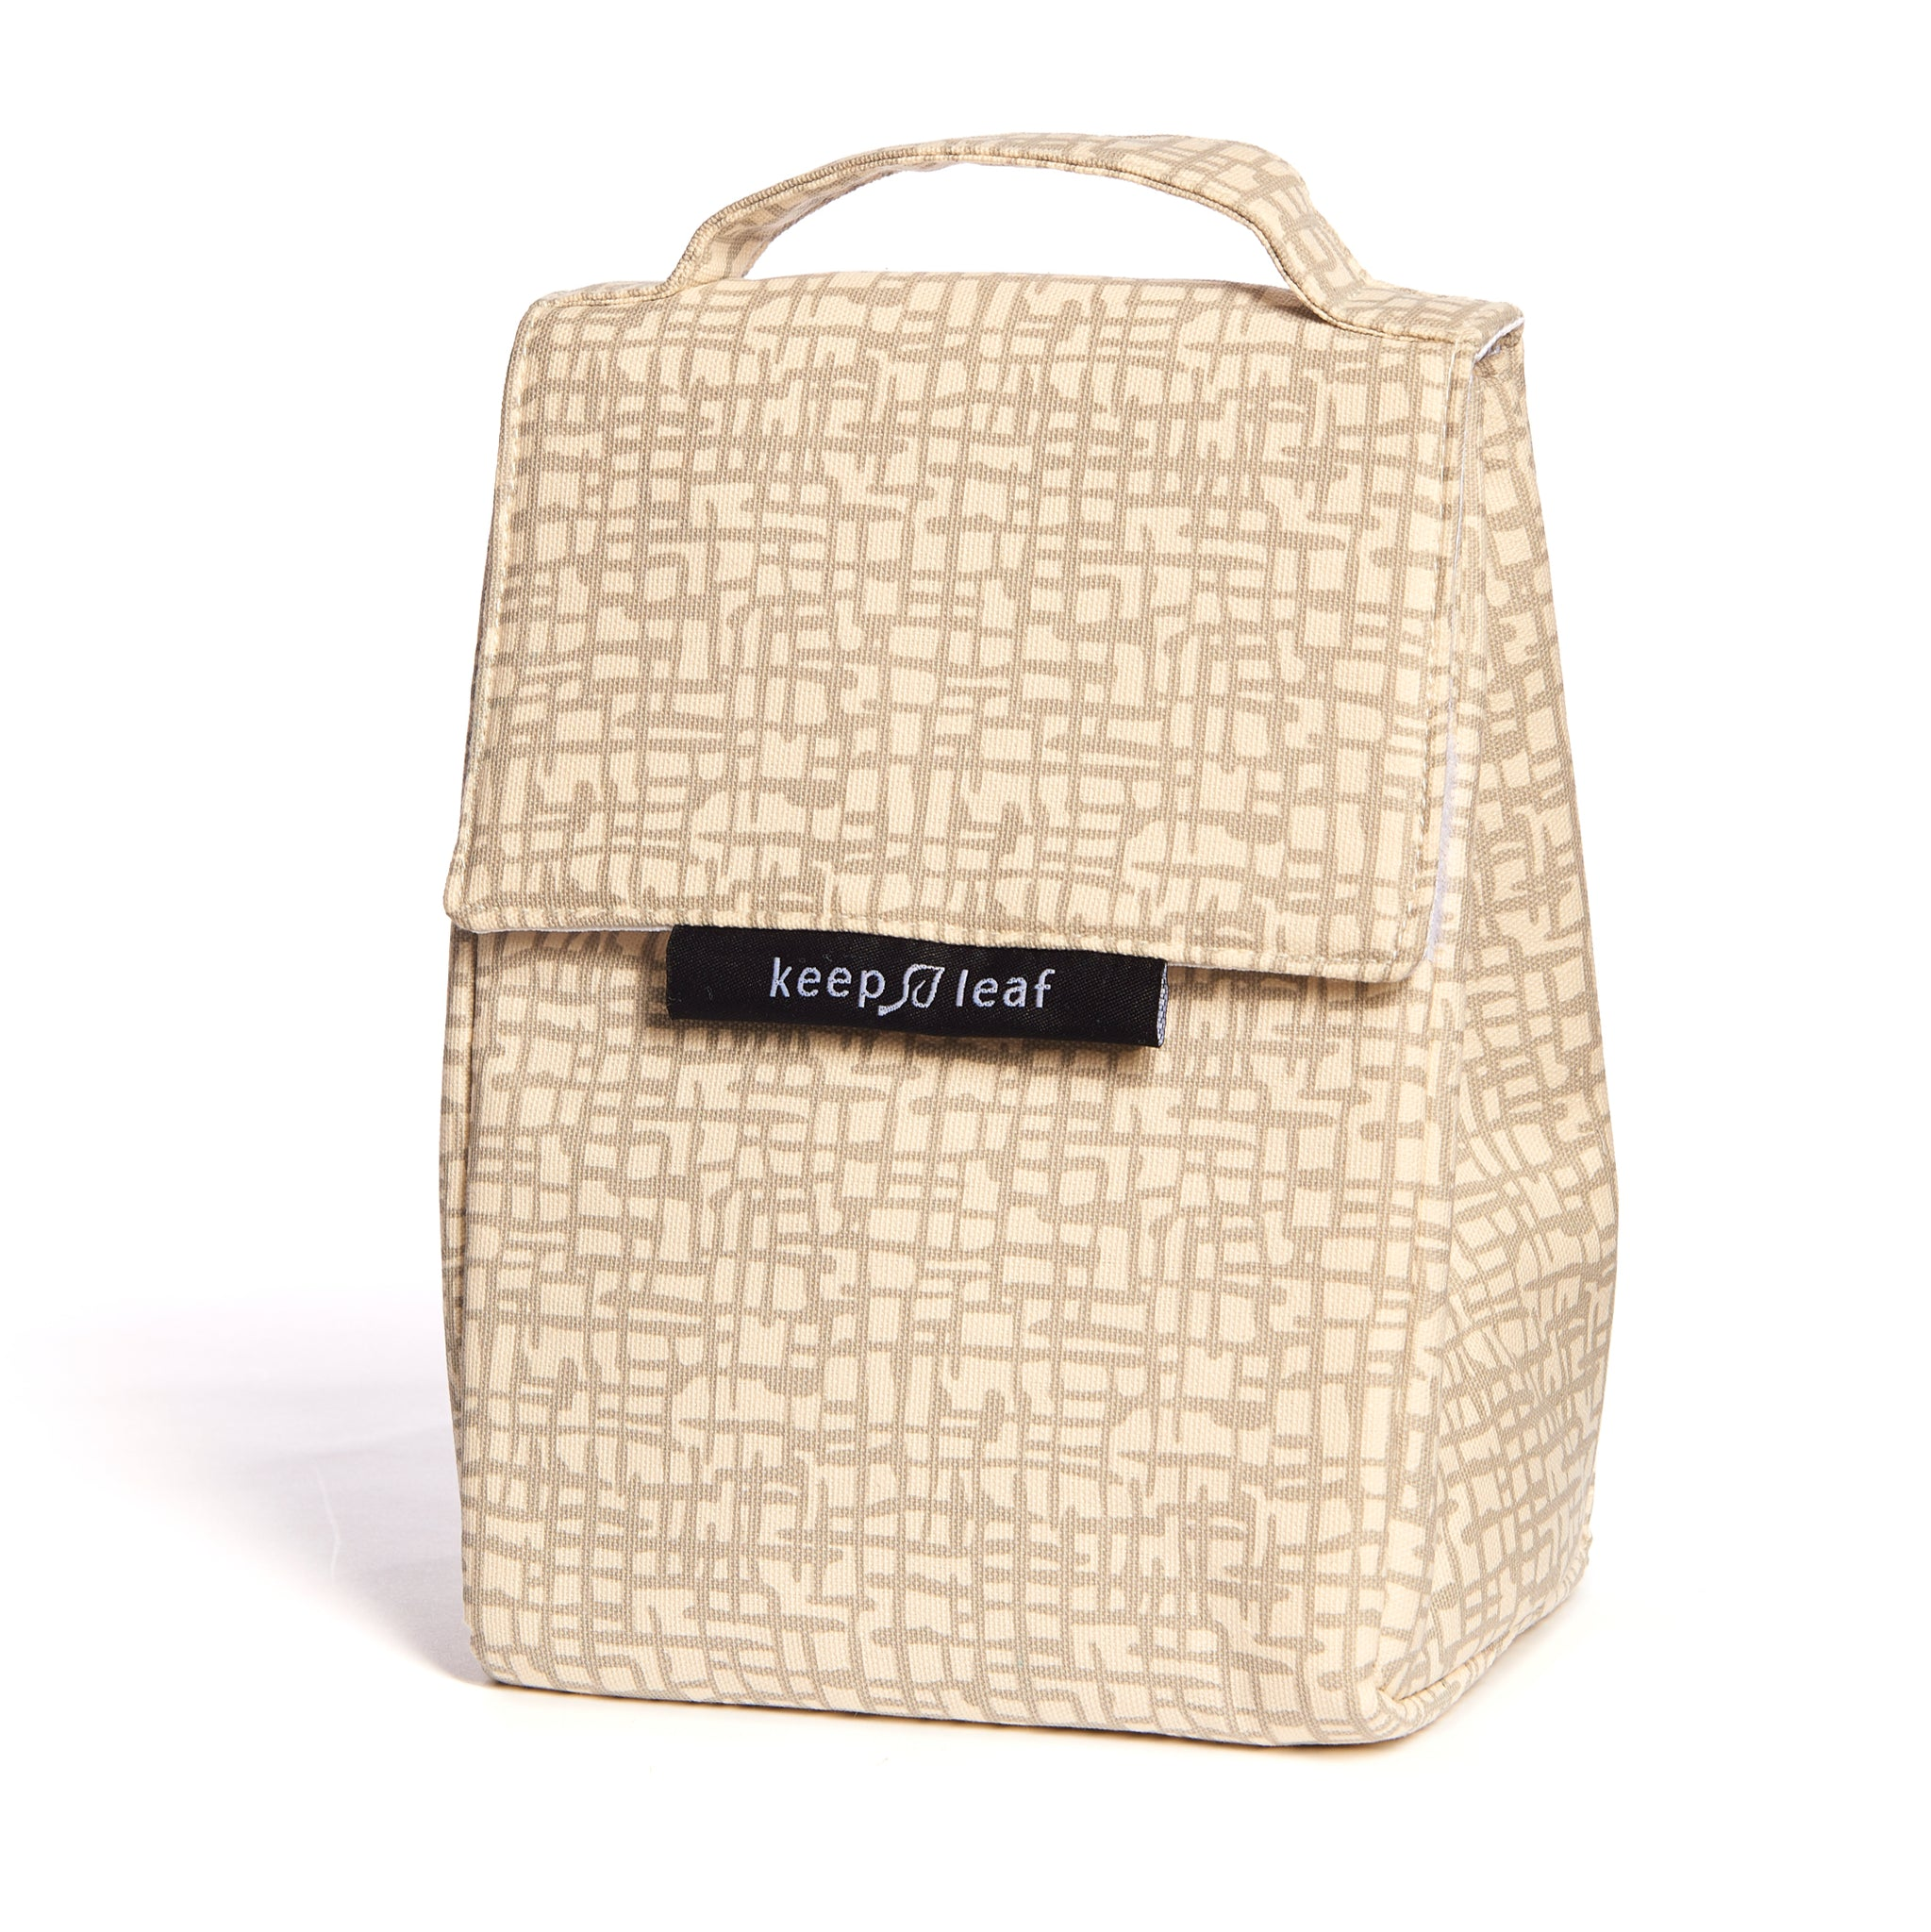 keep leaf Insulated Lunch Bag - Mesh